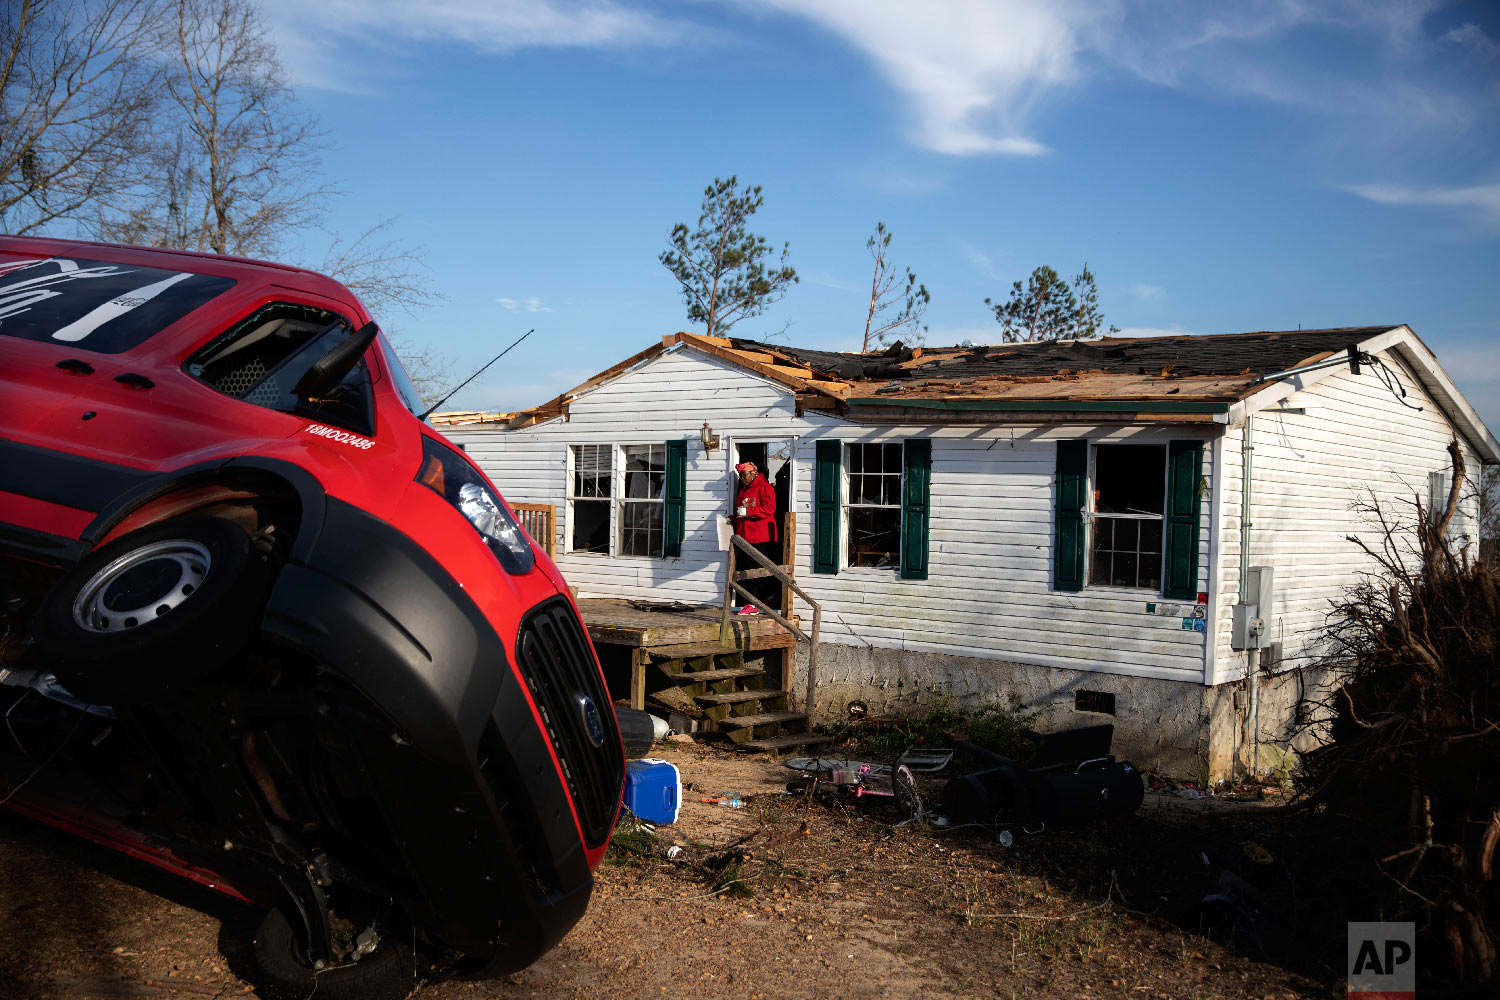 Kiara Slater carries out personal items from her parents' damaged home where they survived a tornado a day earlier in Beauregard, Ala., March 4, 2019. (AP Photo/David Goldman)